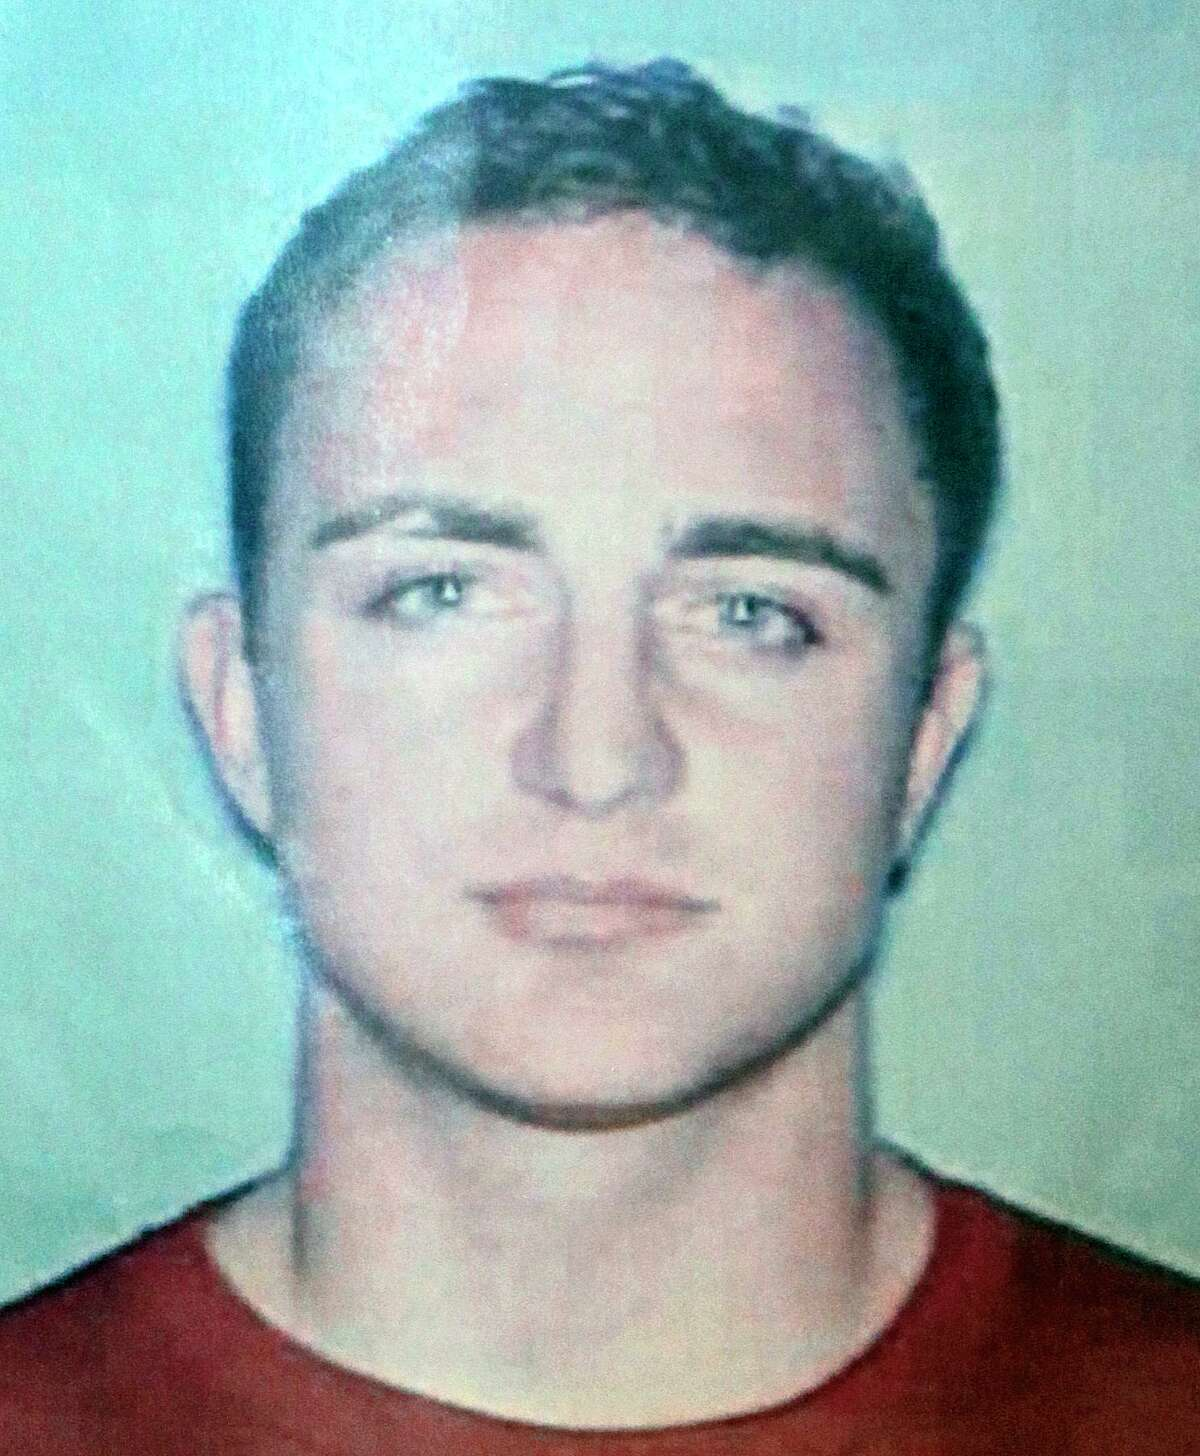 Aaron Scheerhorn, 28, was fatally stabbed outside of Club Blur in the Montrose area of Houston, Texas around 11:40pm on Friday, December, 10, 2010.